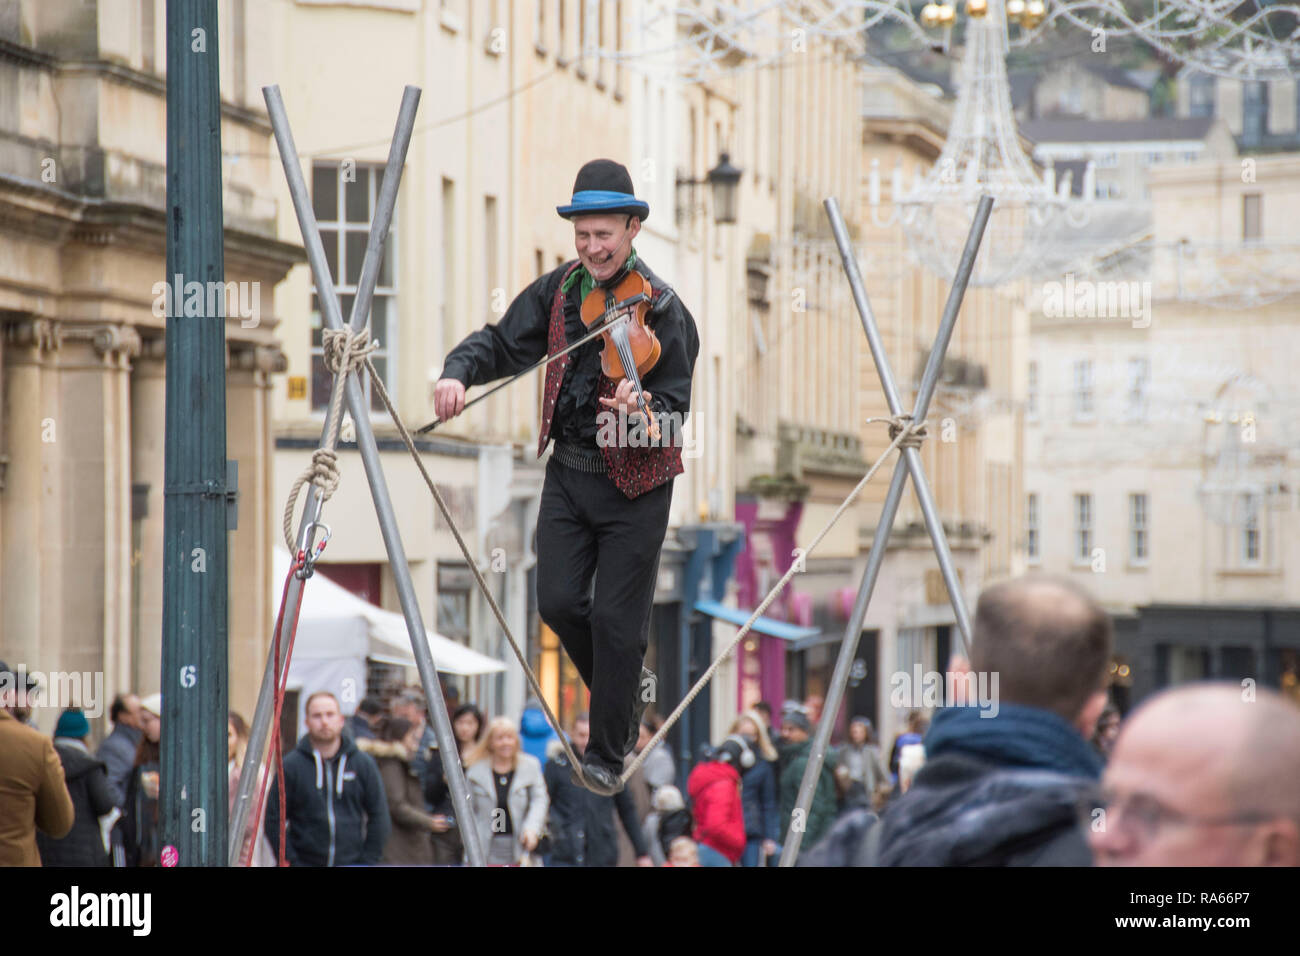 Bath, UK. 1st Jan 2019. A street entertainer plays his violin while walking on a tightrope in the centre of Bath, England on the first day of 2019 as crowds of shoppers make the most of the New Years Day sales. Credit: Phil Rees/Alamy Live News - Stock Image